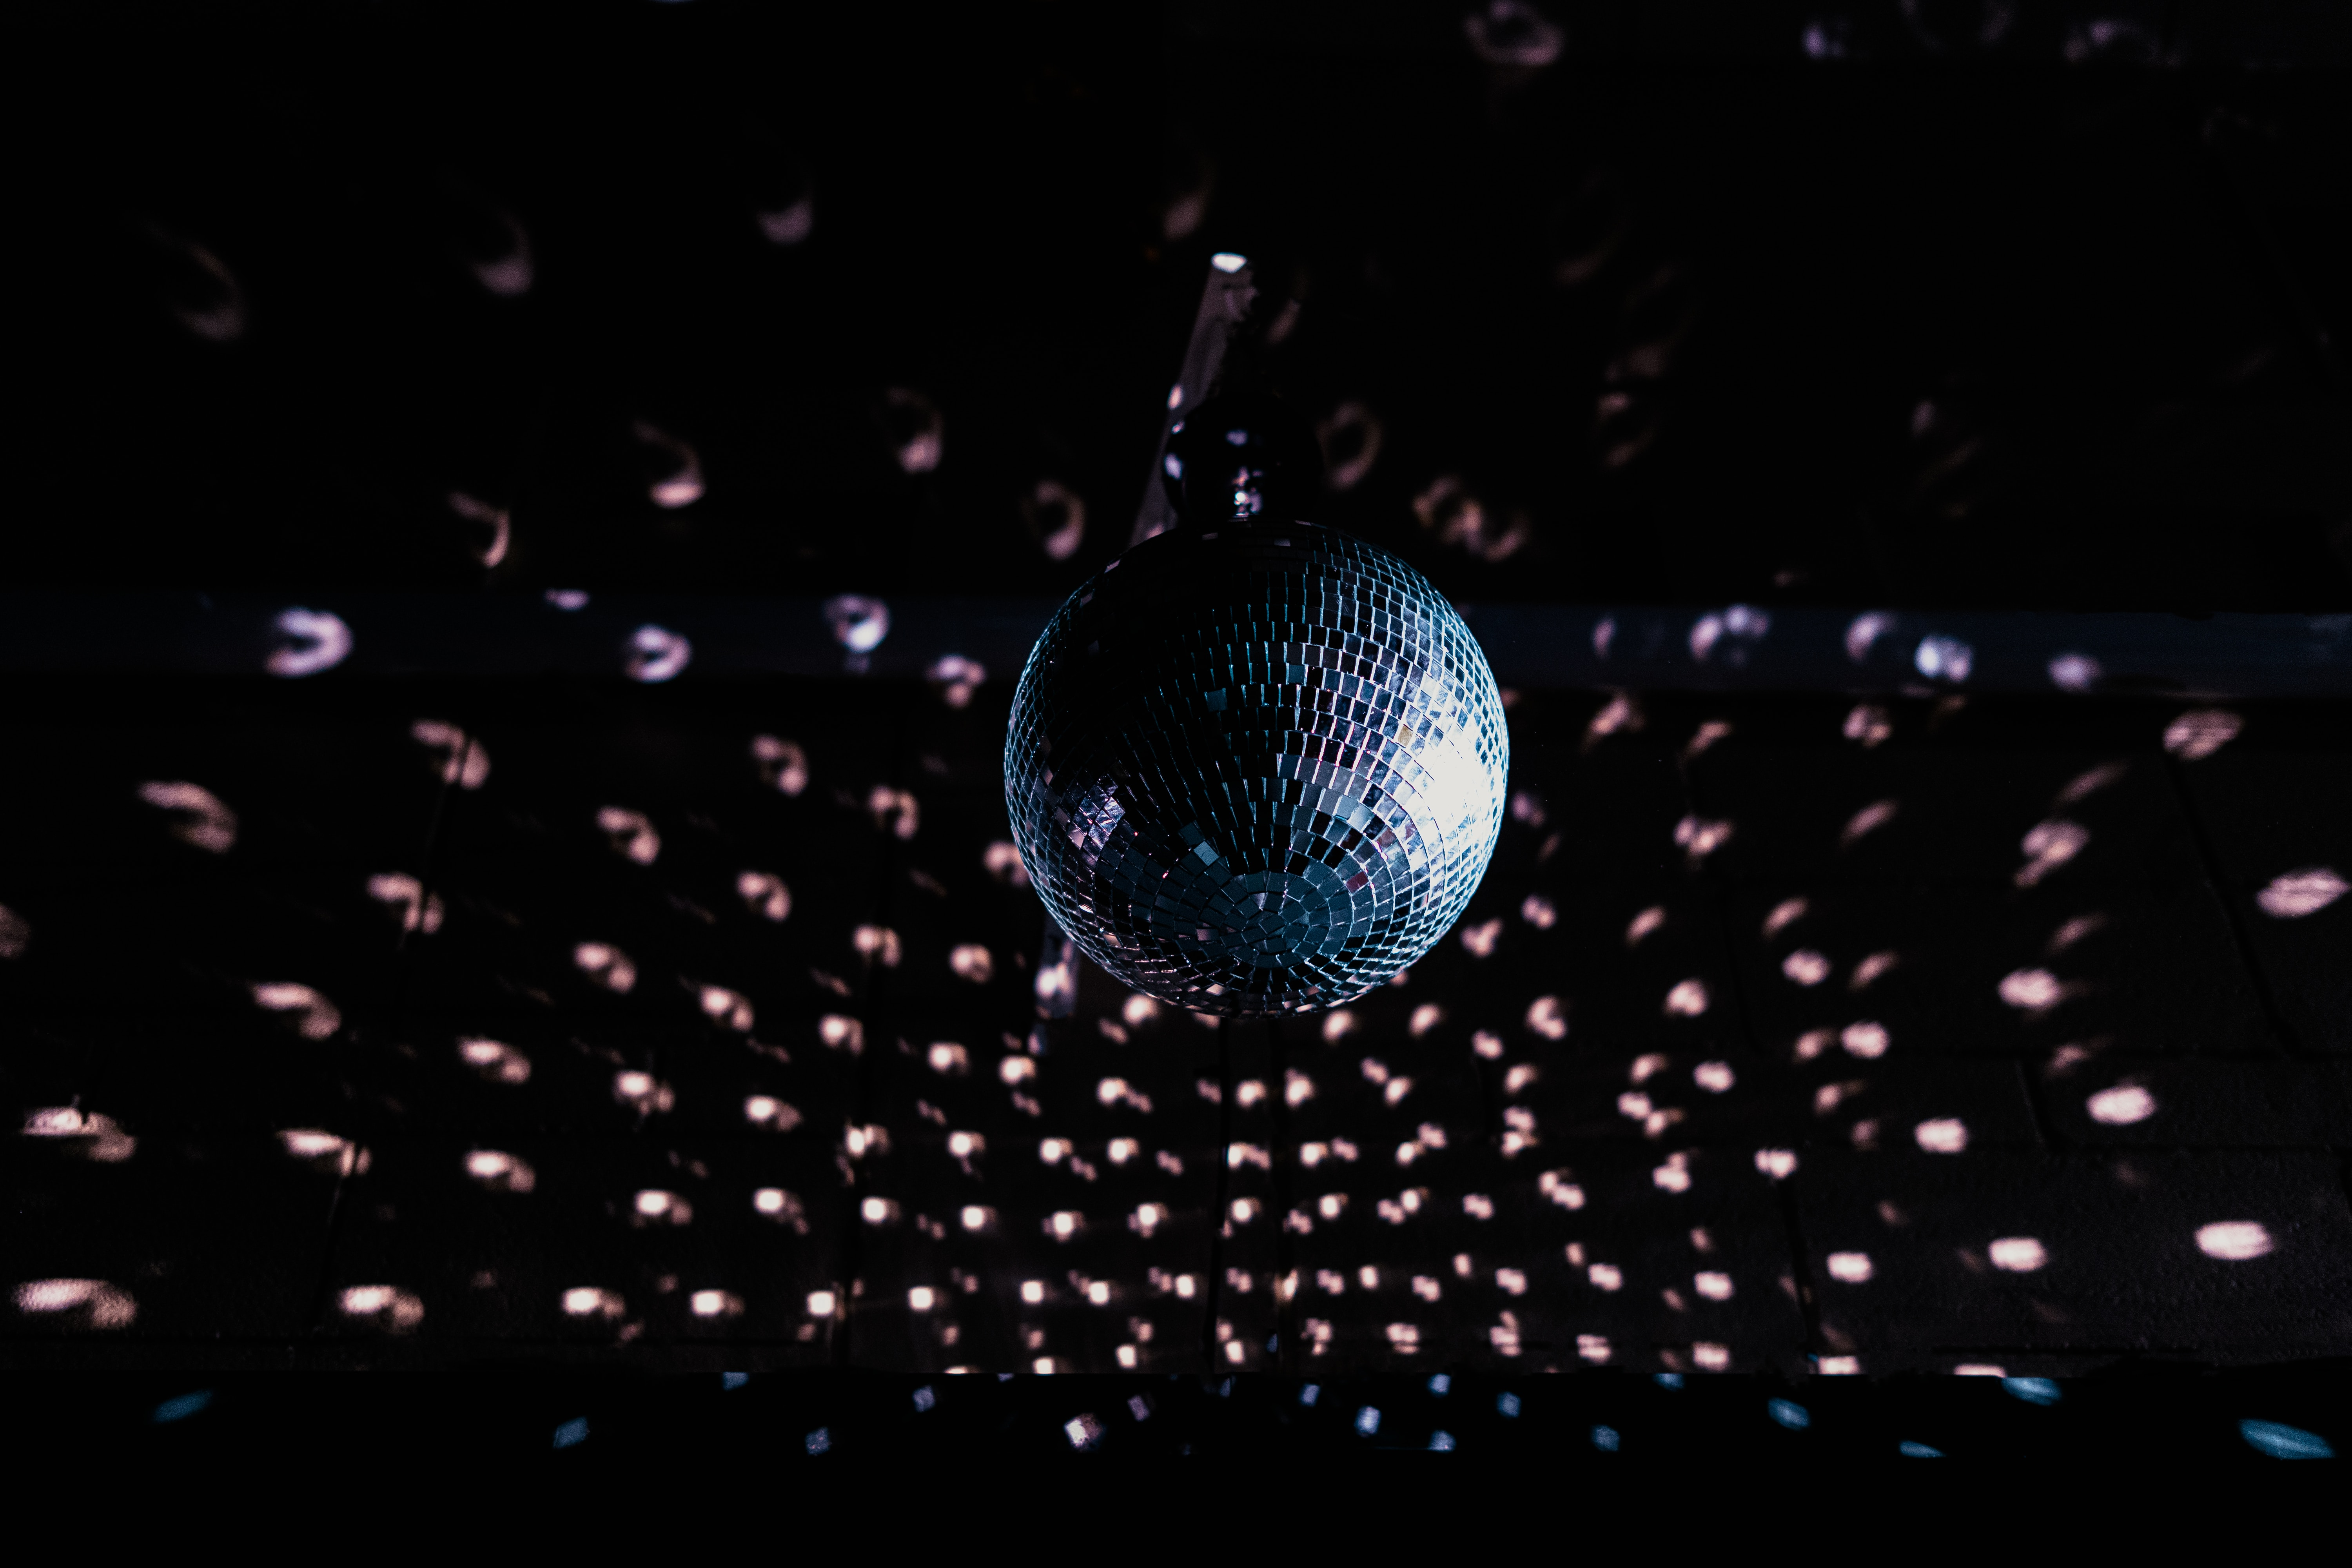 59179 download wallpaper Music, Disco Ball, Ball, Sphere, Mirrored, Mirror, Dark screensavers and pictures for free